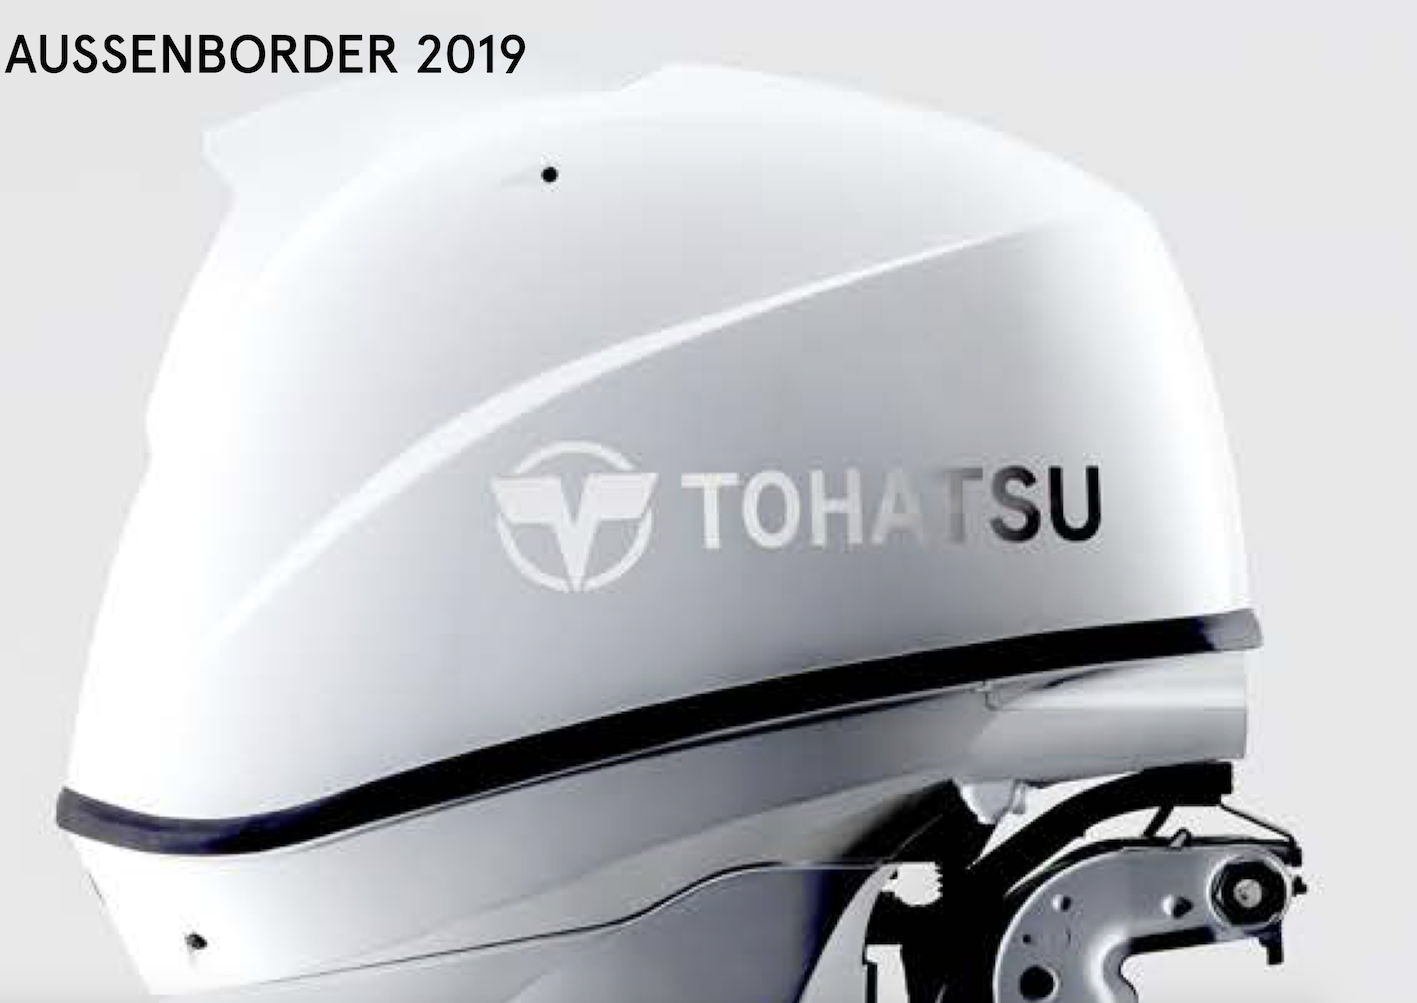 Tohatsu Outboards 2019